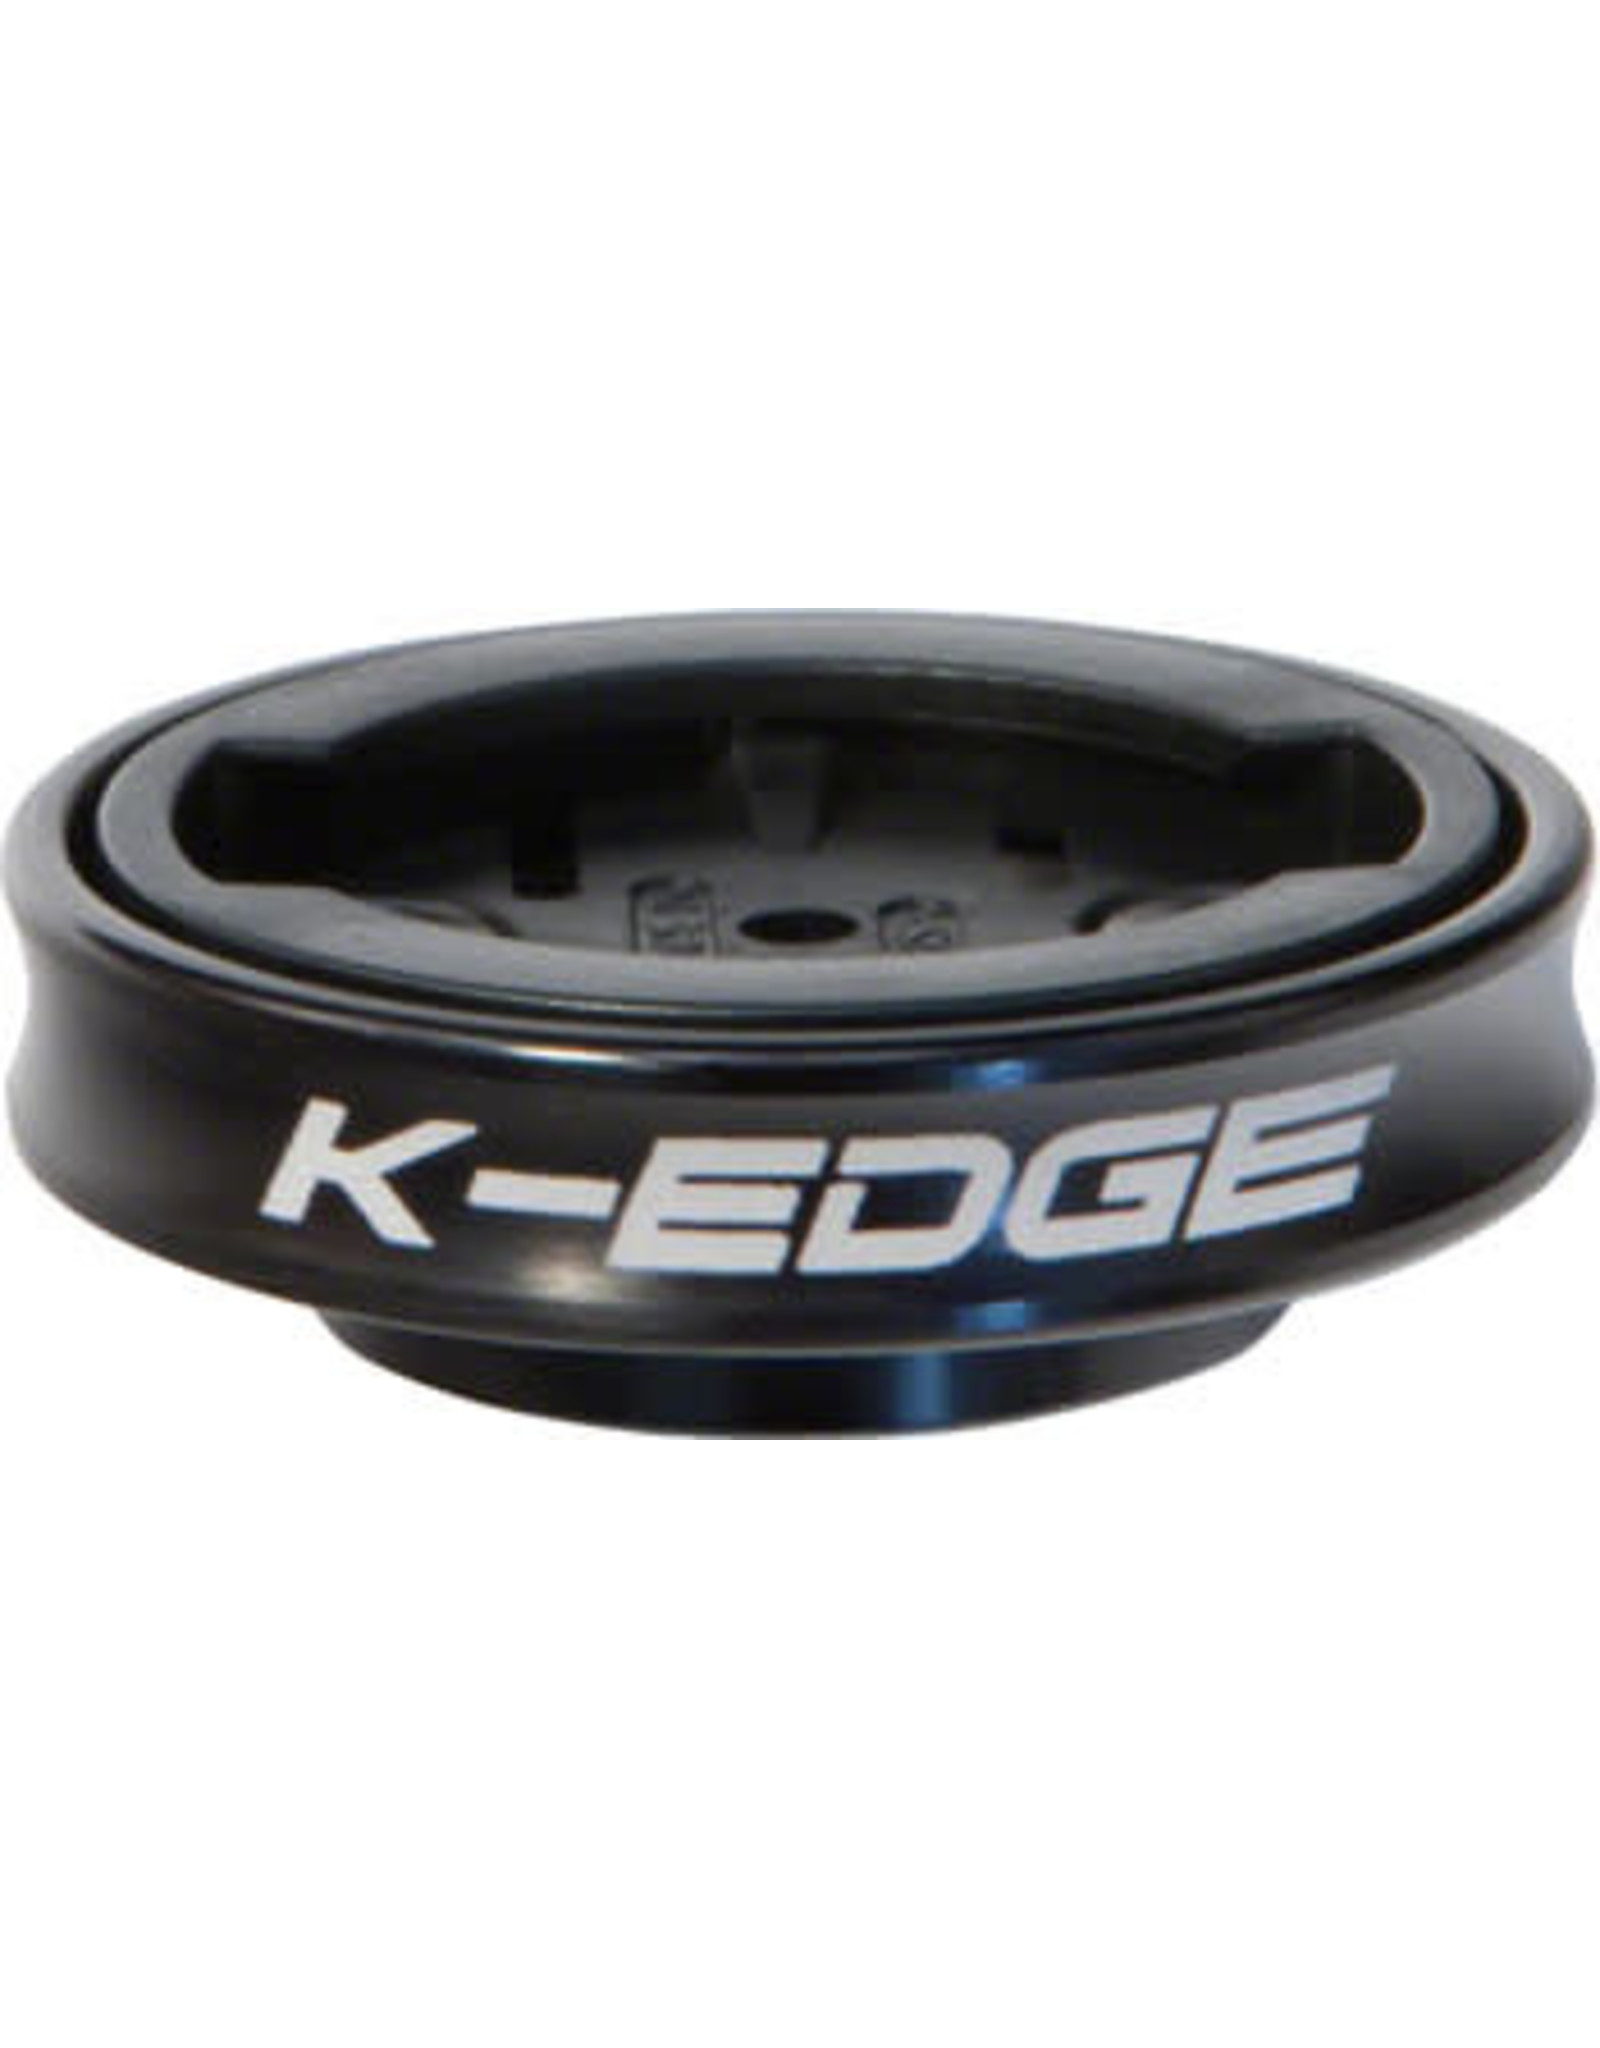 K-Edge K-EDGE Gravity Cap Stem Mount for Garmin Quarter Turn Type Computers, Black